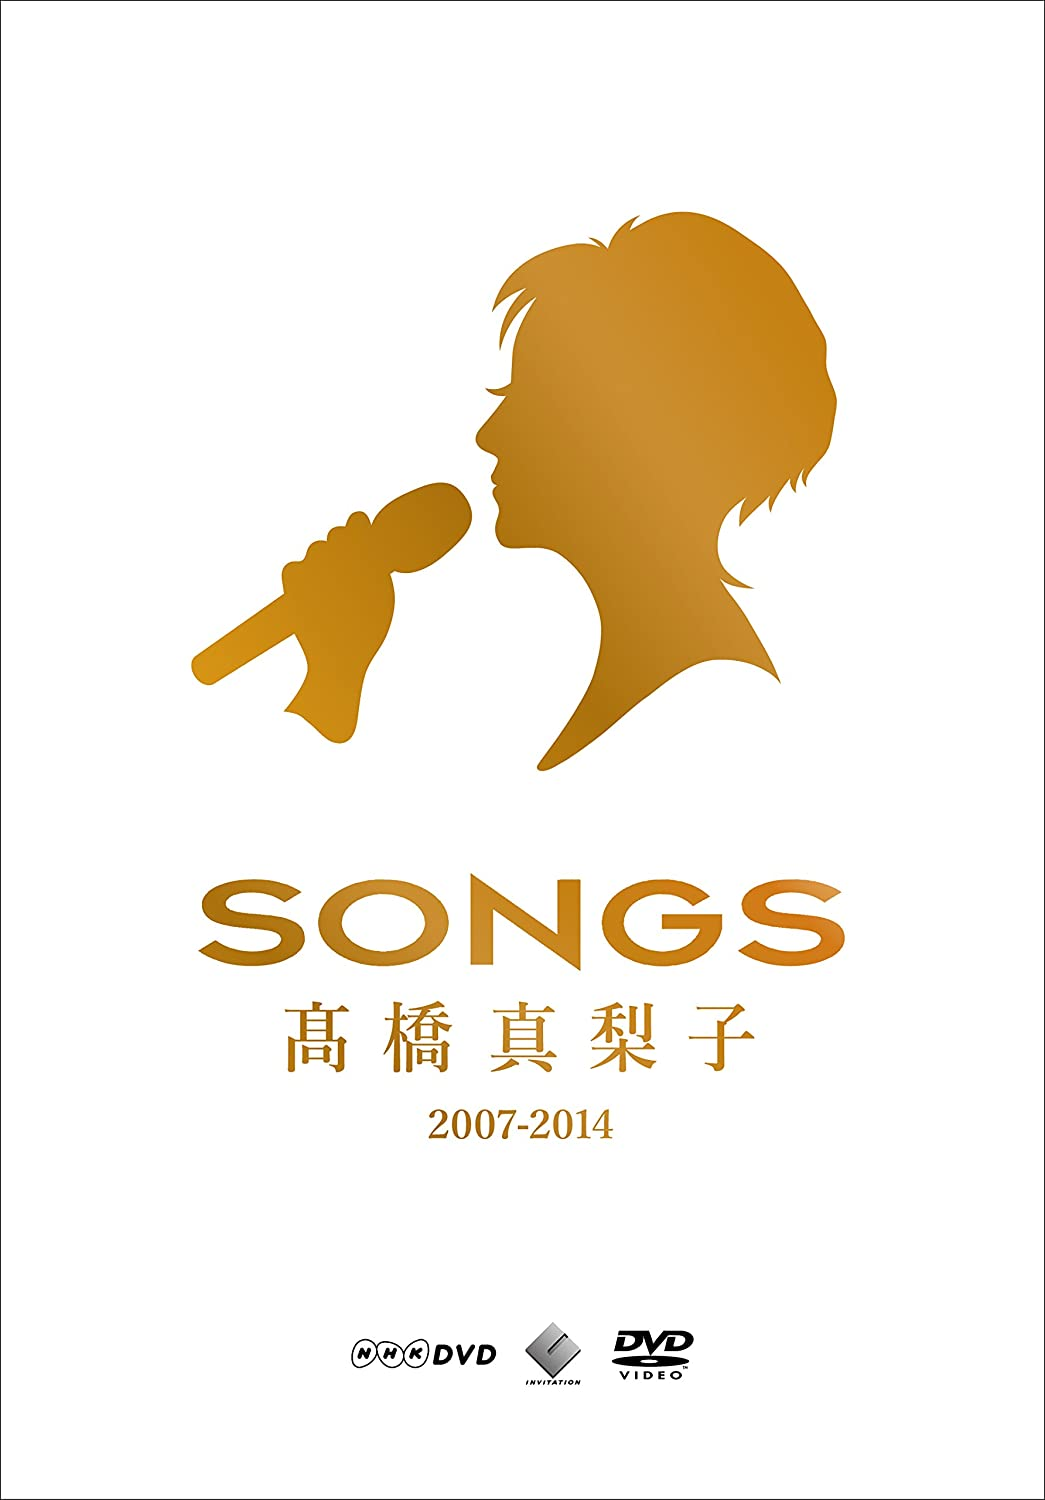 SONGS 高橋真梨子 2007-2014 DVD3巻セット B00TY110LE